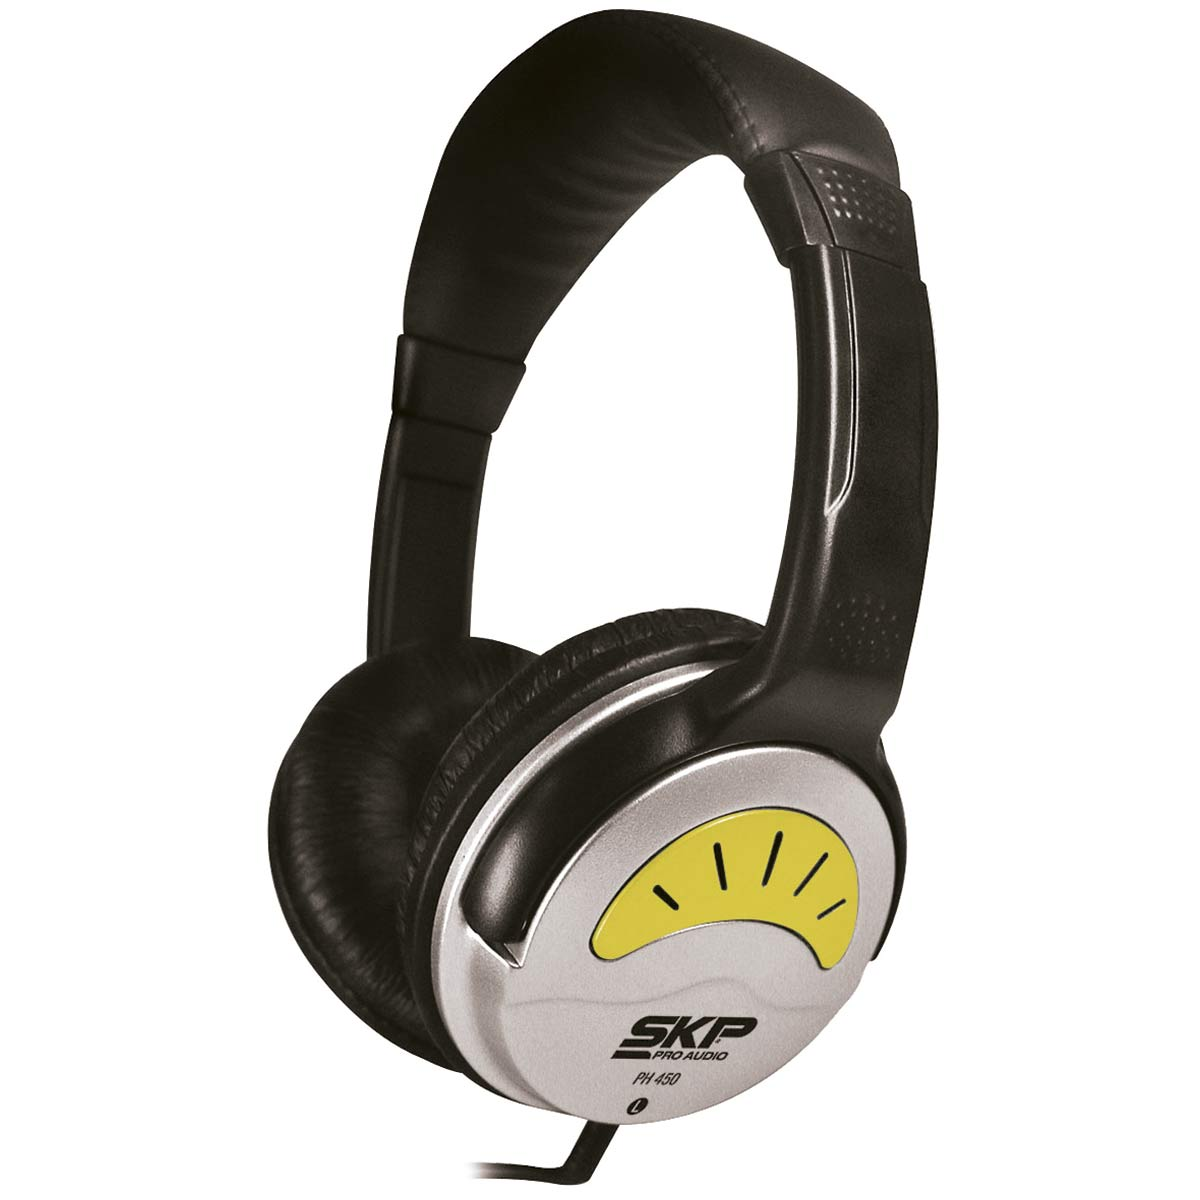 PH450 - Fone de Ouvido Over-ear PH 450 - SKP